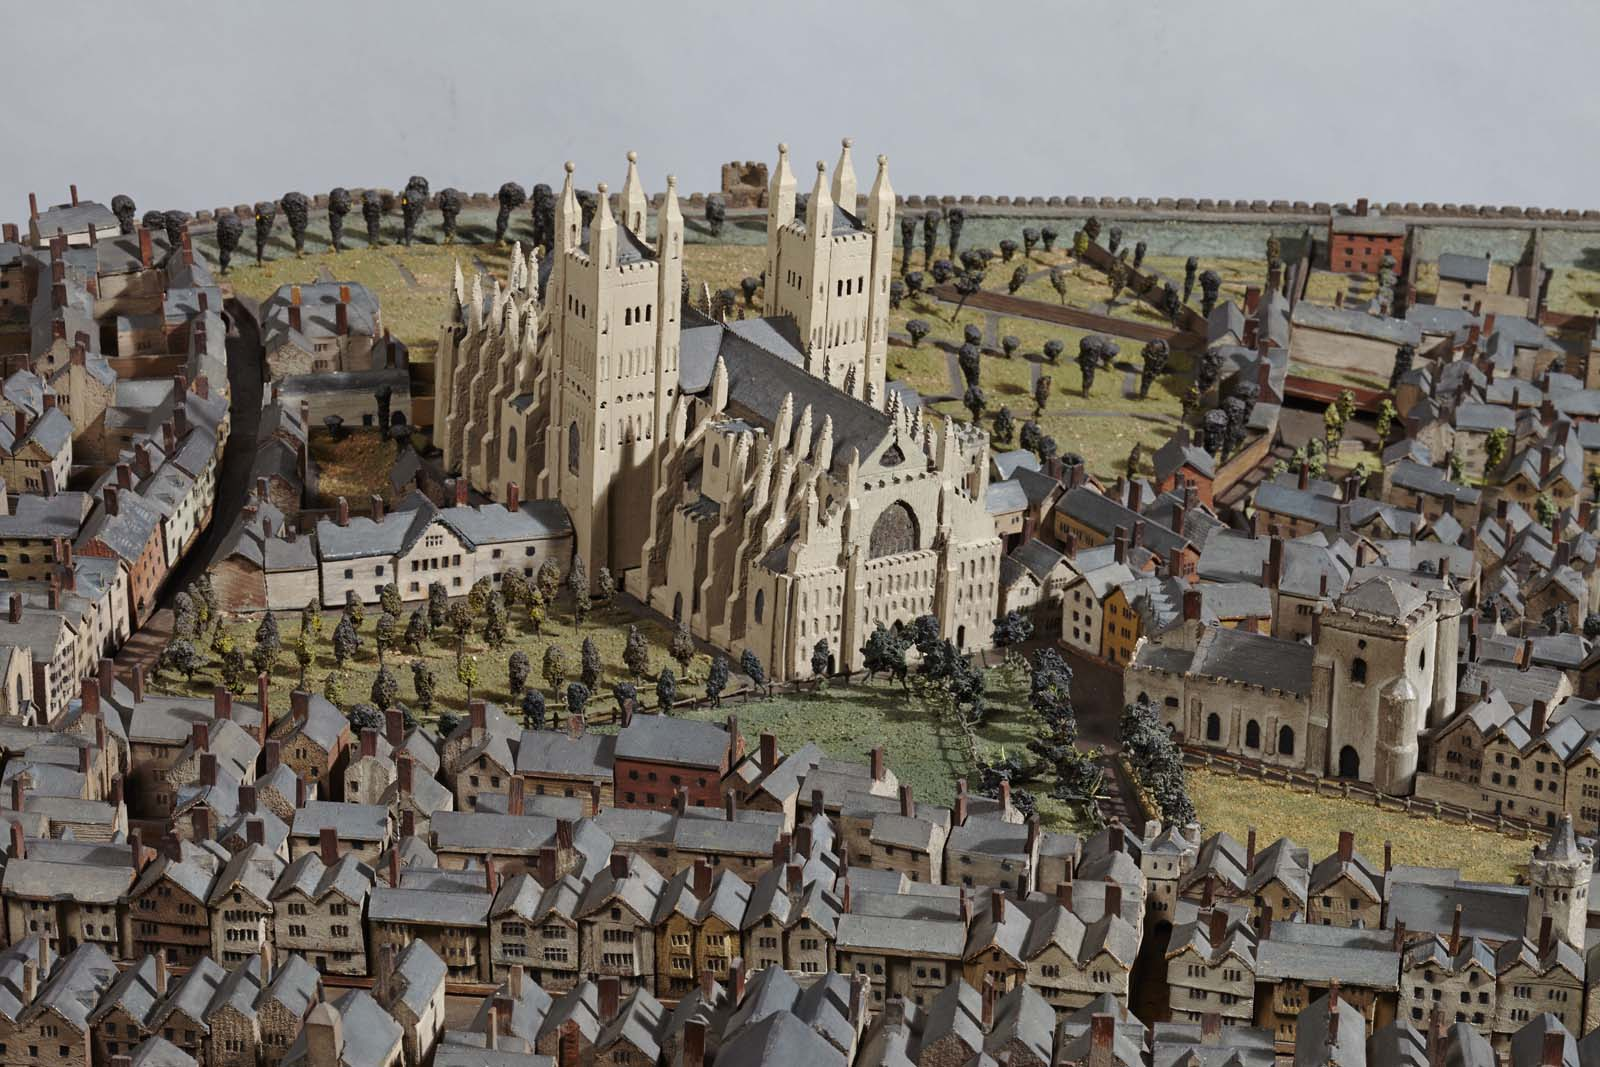 photo of a scale model of a town with central cathedral and city walls enclosing a medieval street system